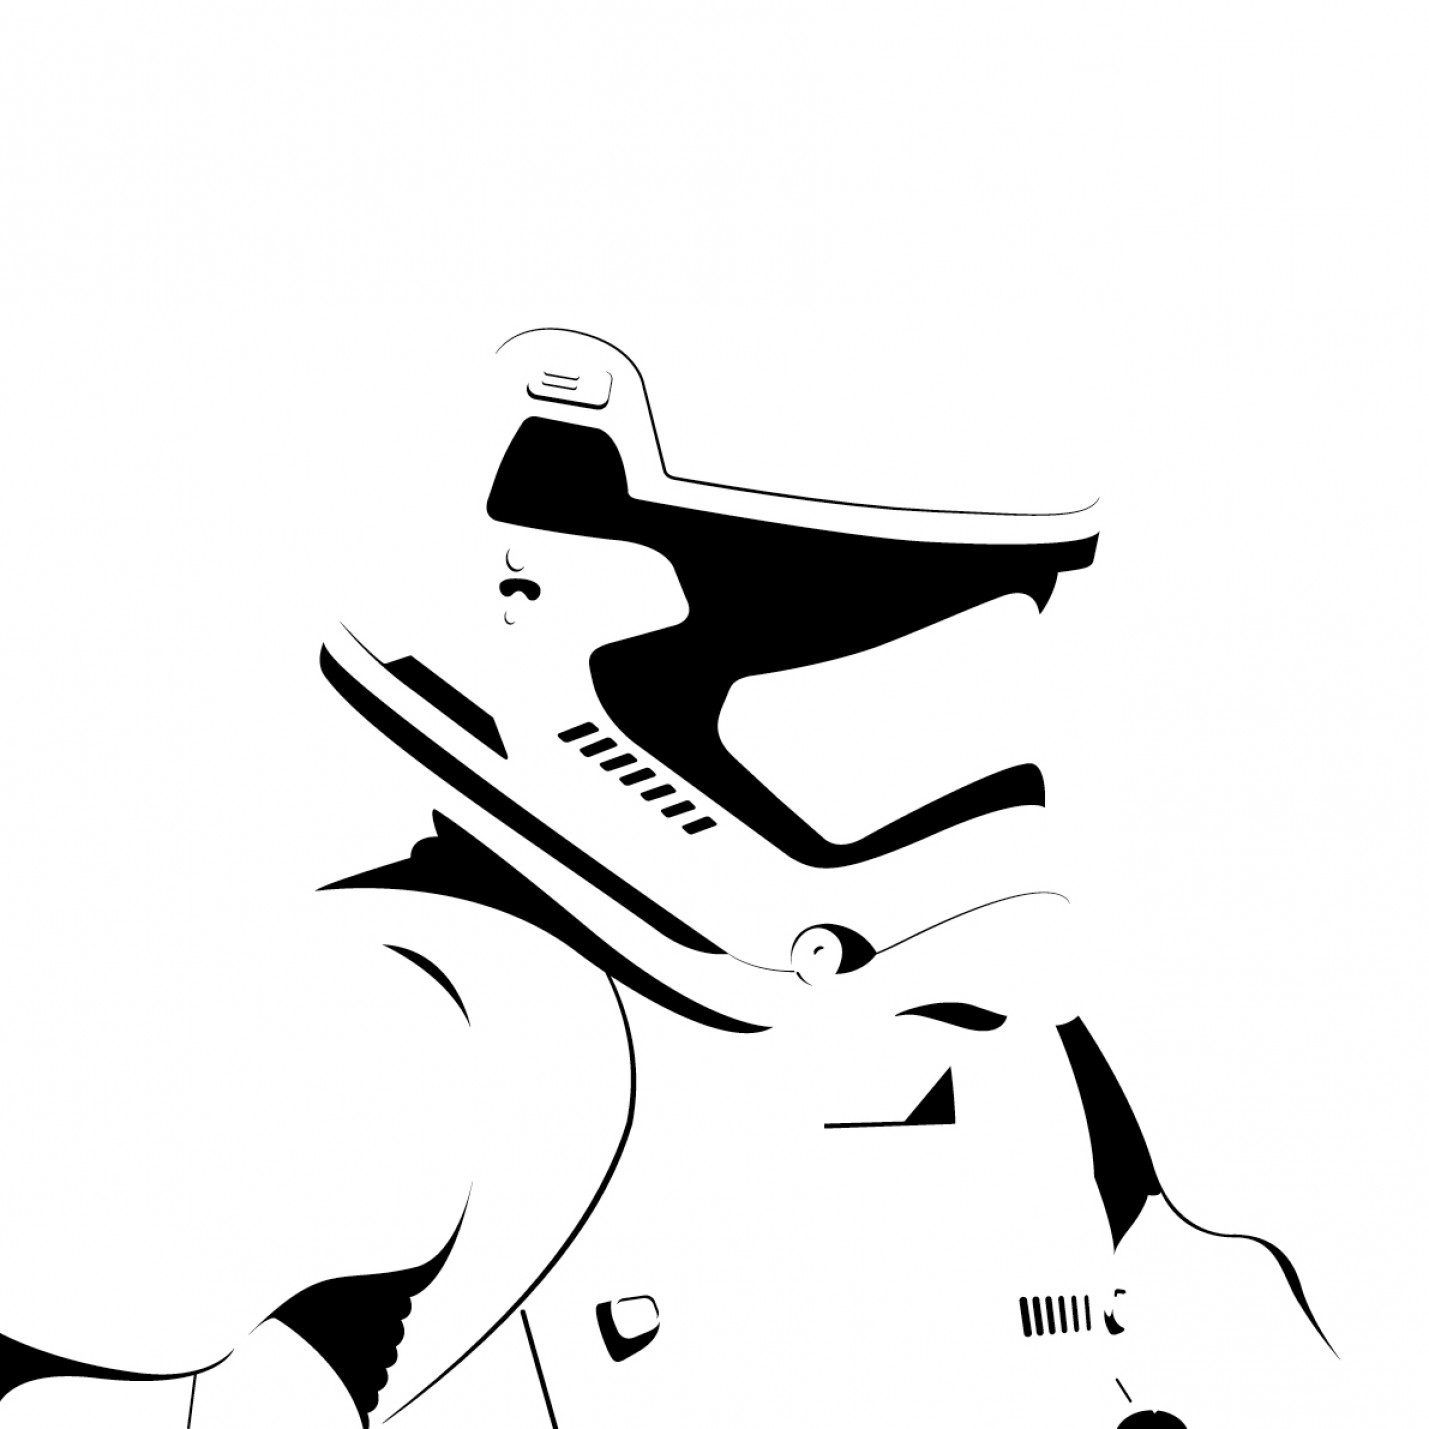 Boba Fett Vector Black And White: Star Wars Black And White Vector